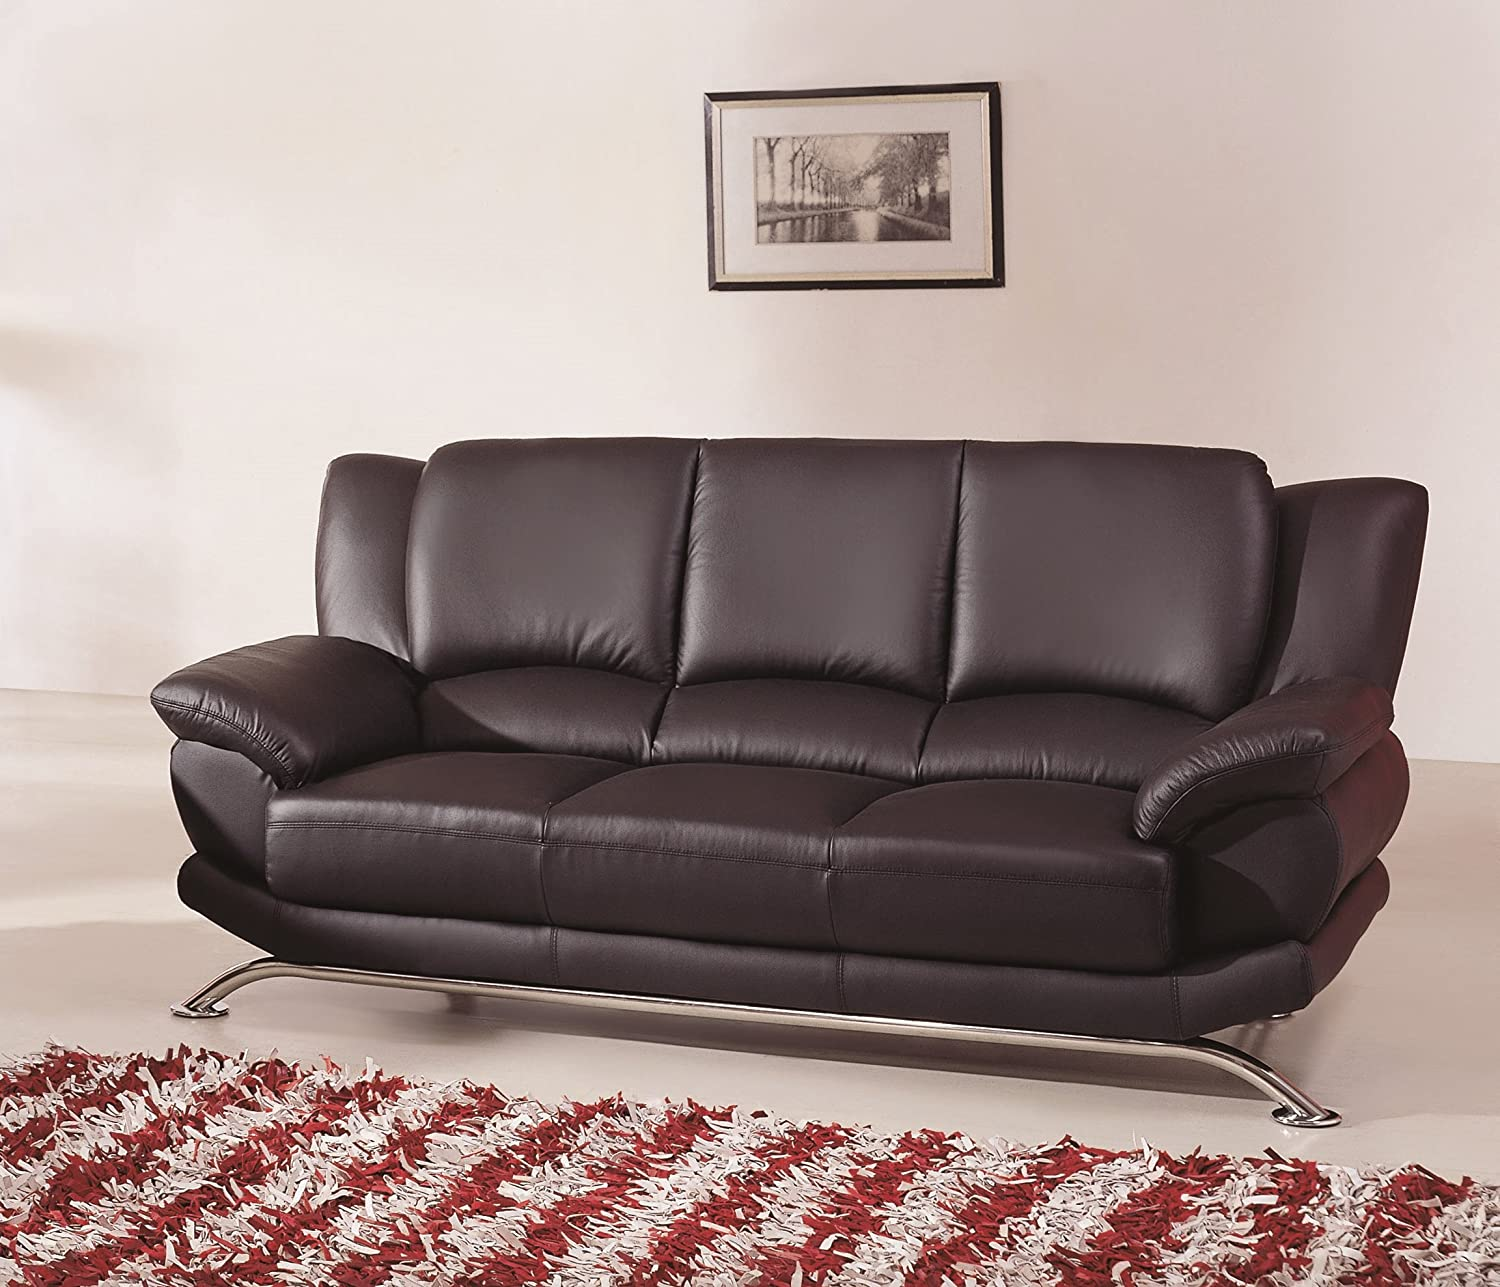 amazoncom modern line furniture bs contemporary leather sofa blackindustrial  scientific. amazoncom modern line furniture bs contemporary leather sofa